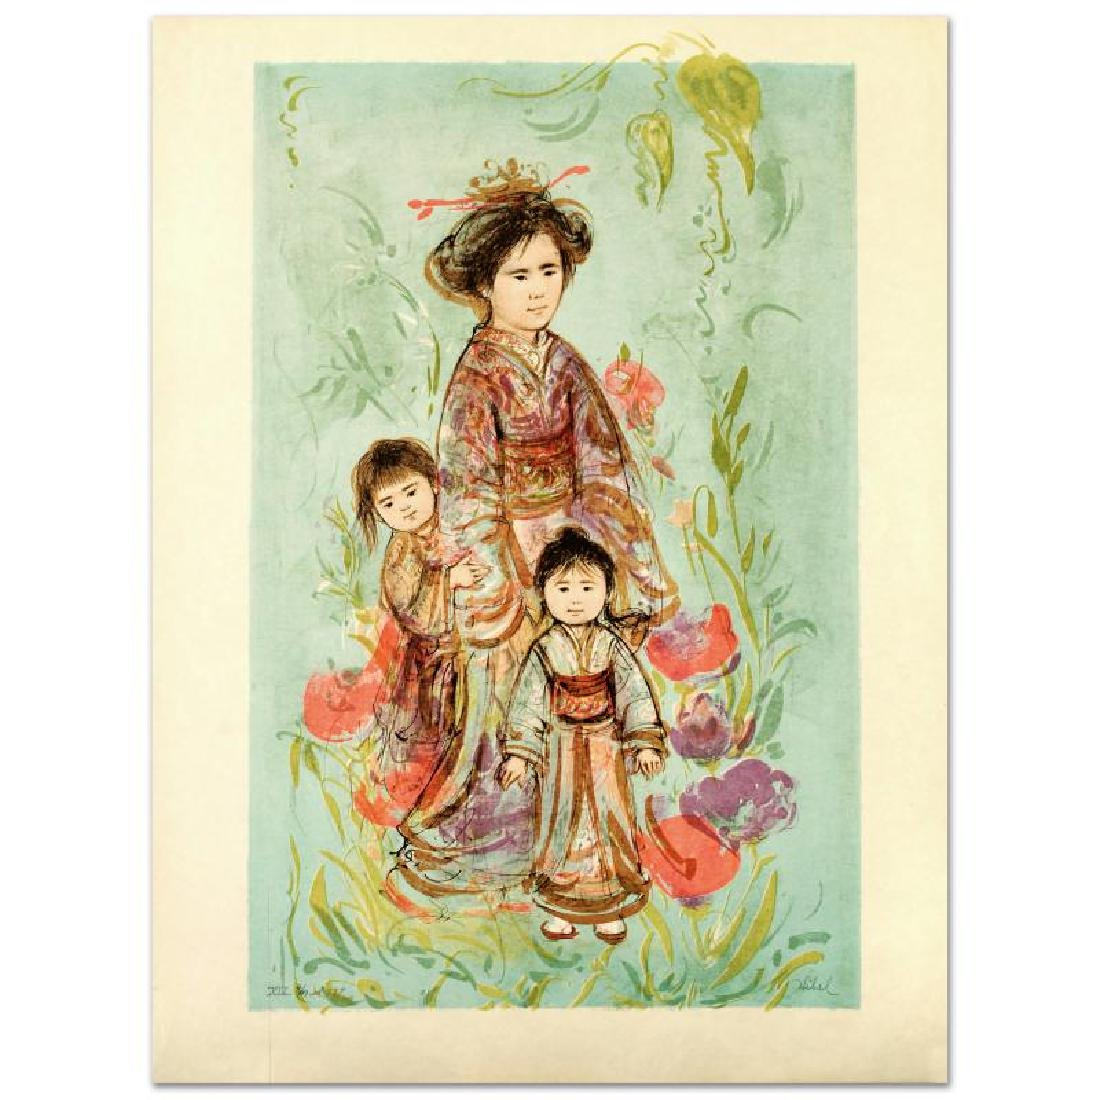 """Setsu"" Limited Edition Lithograph by Edna Hibel"